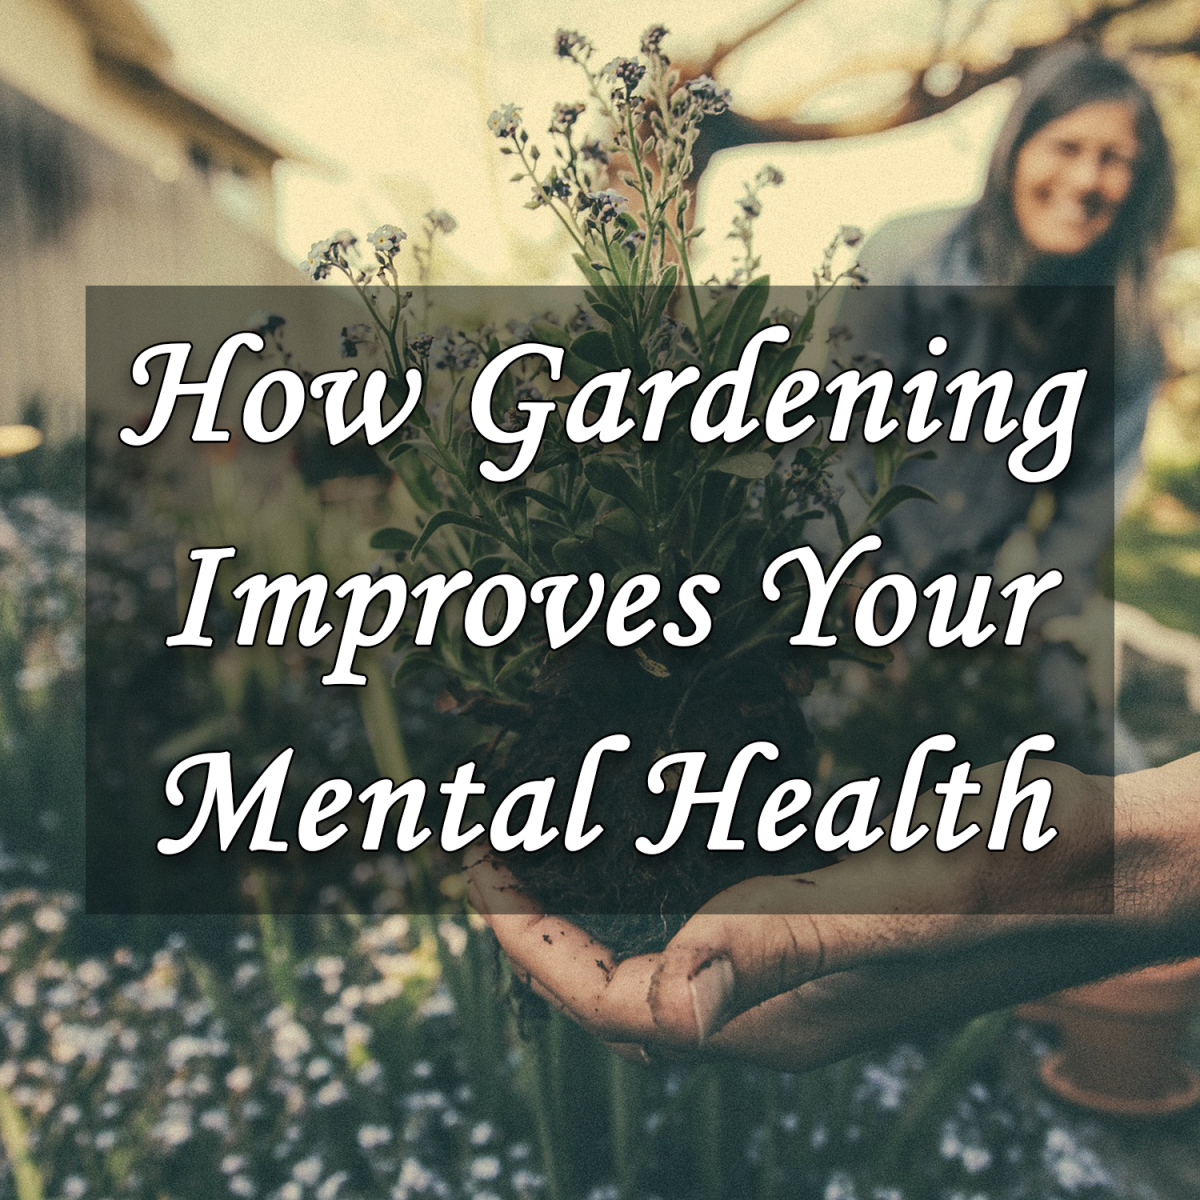 How Gardening Improves Your Mental Health